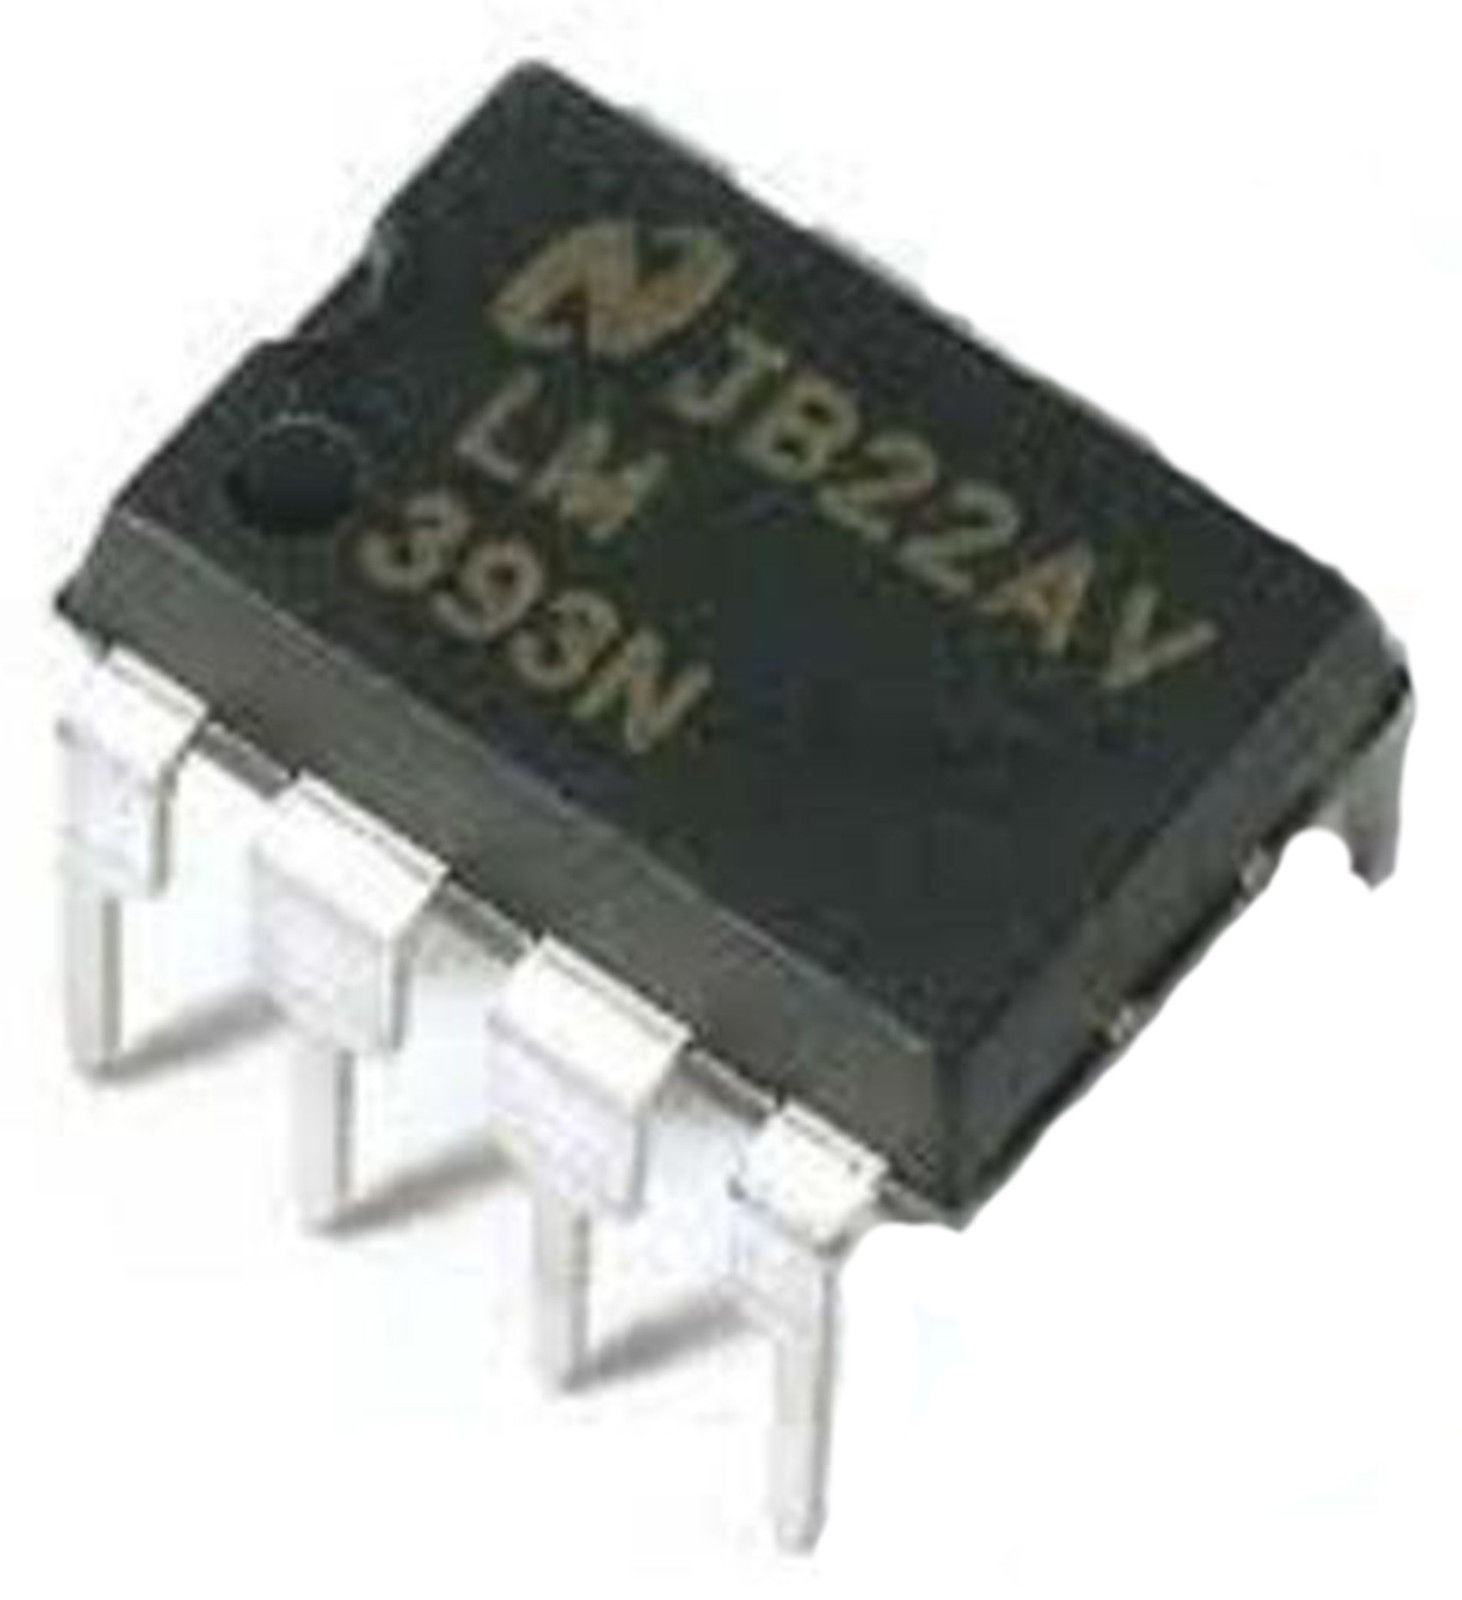 5 X Lm393 Dual Voltage Differential Comparator Dip8 All Top Notch La3600 Band Equalizer Circuit